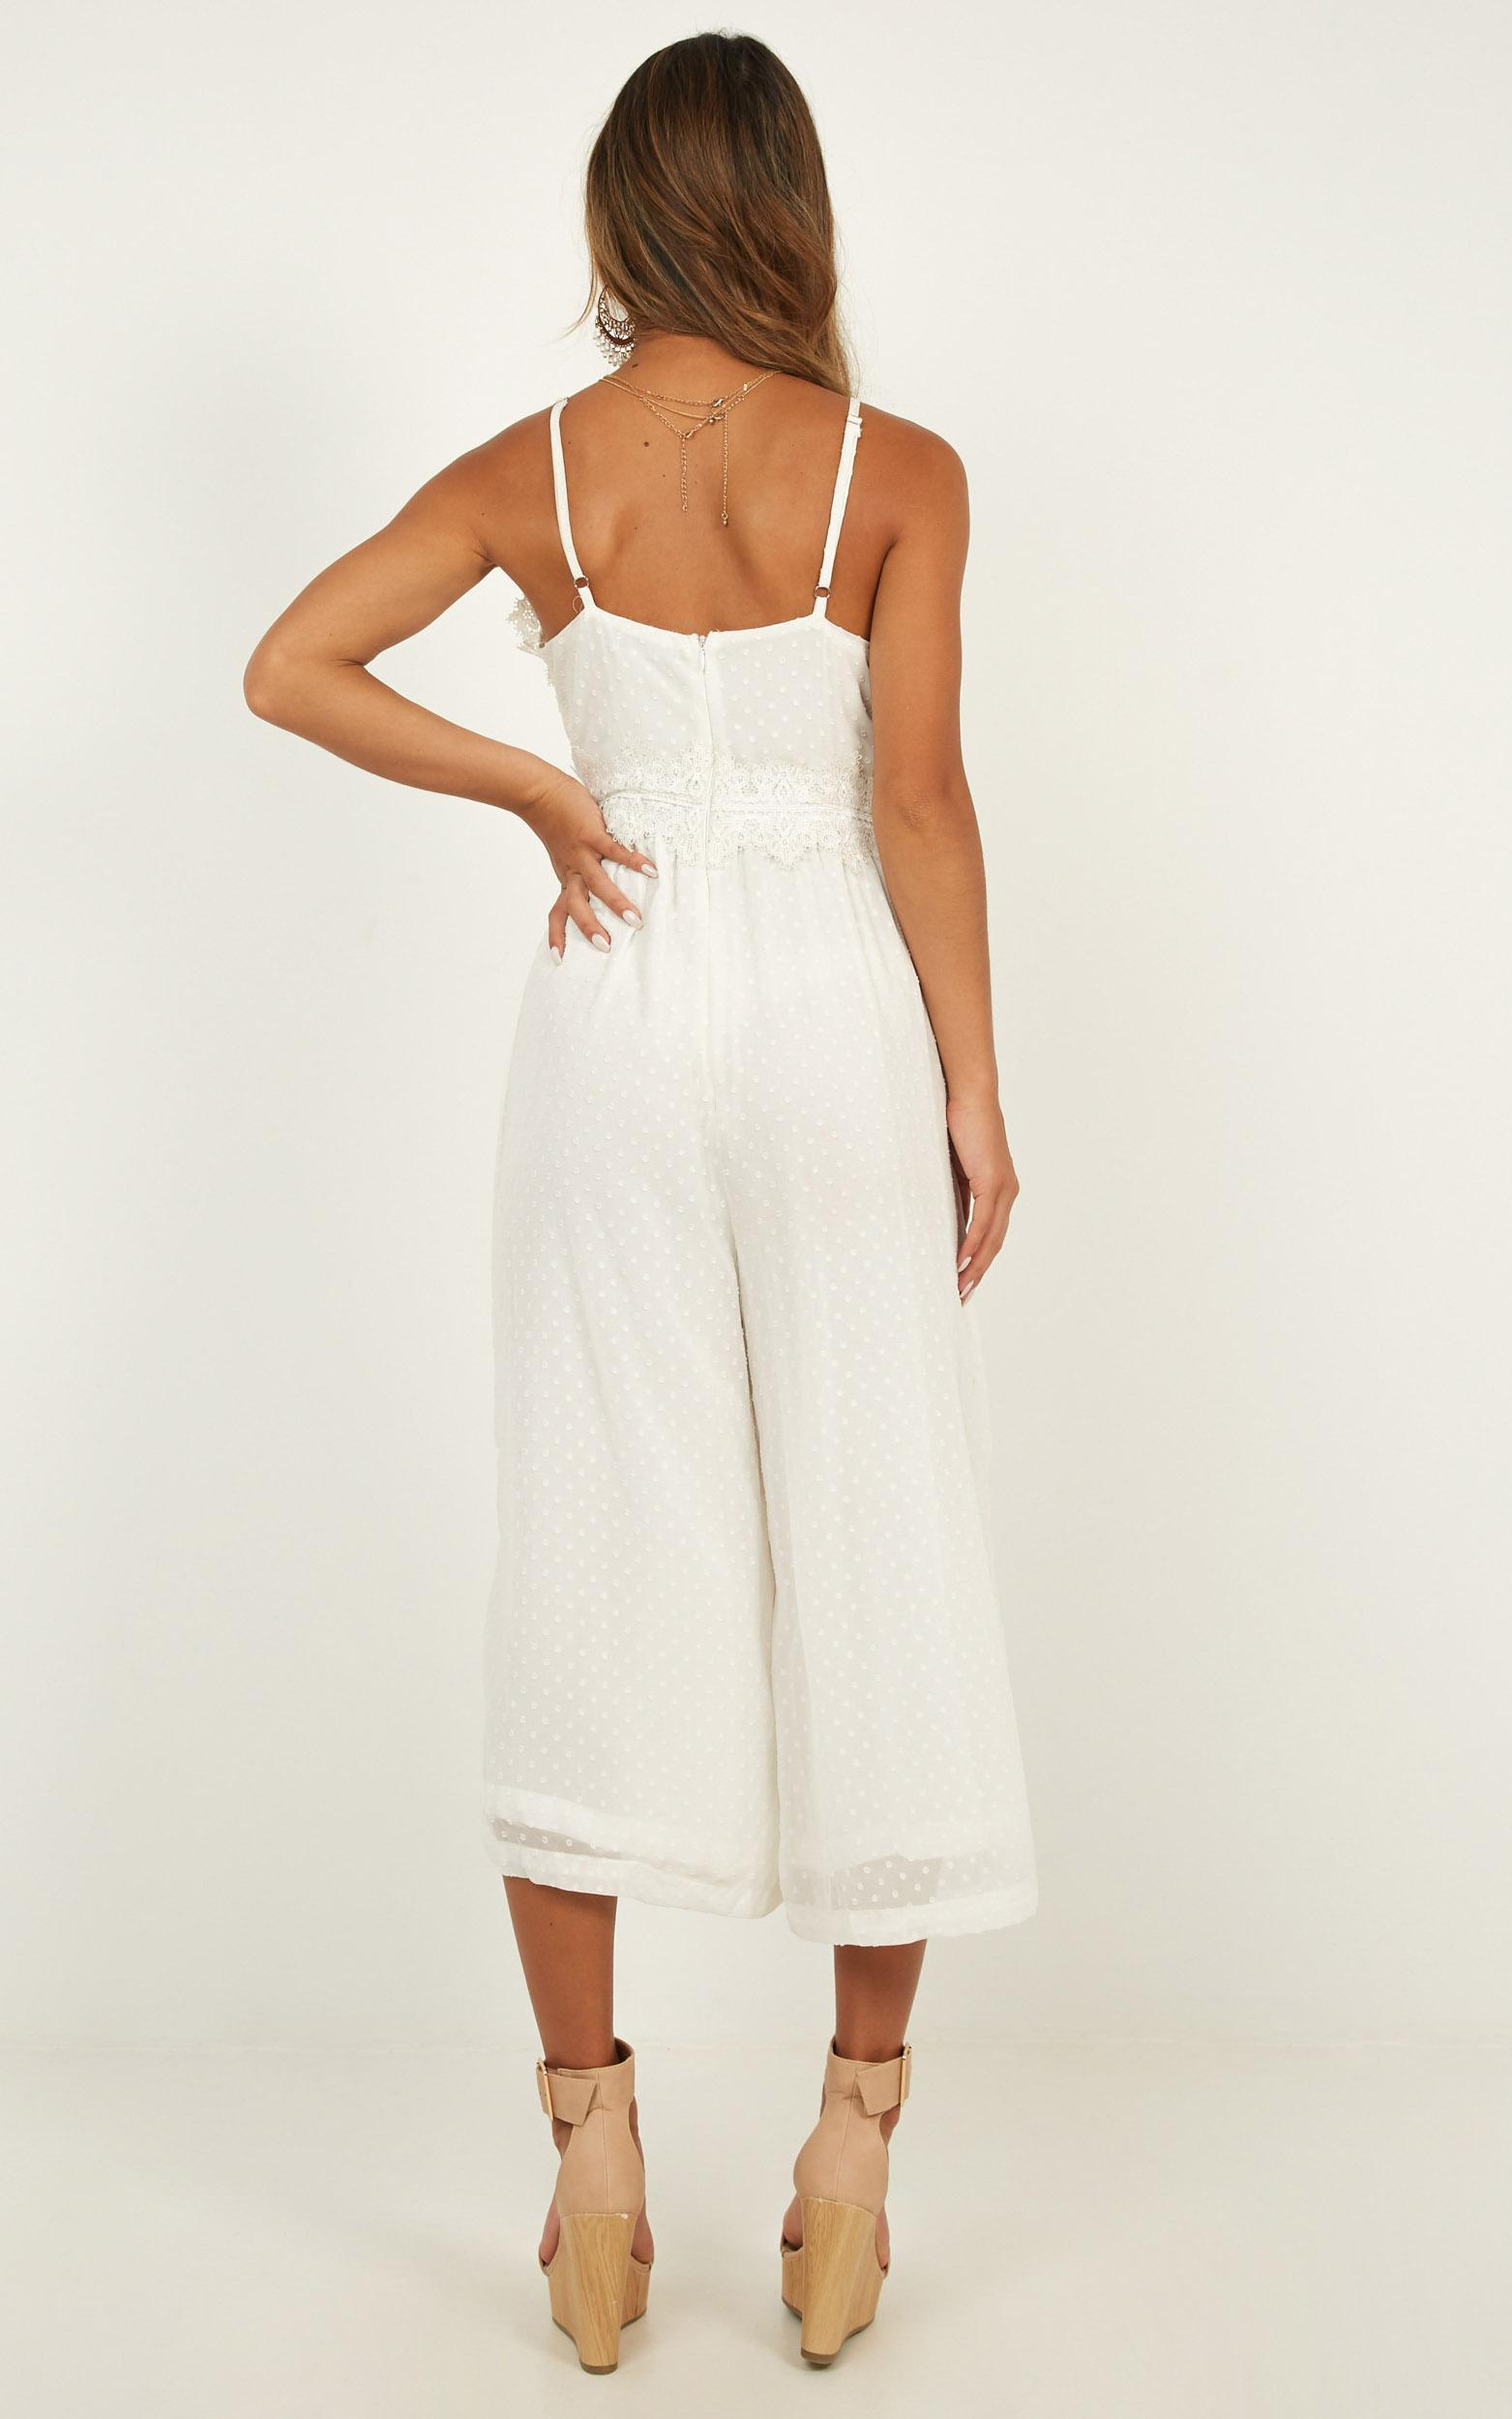 We Could Be Friends jumpsuit in white - 20 (XXXXL), White, hi-res image number null